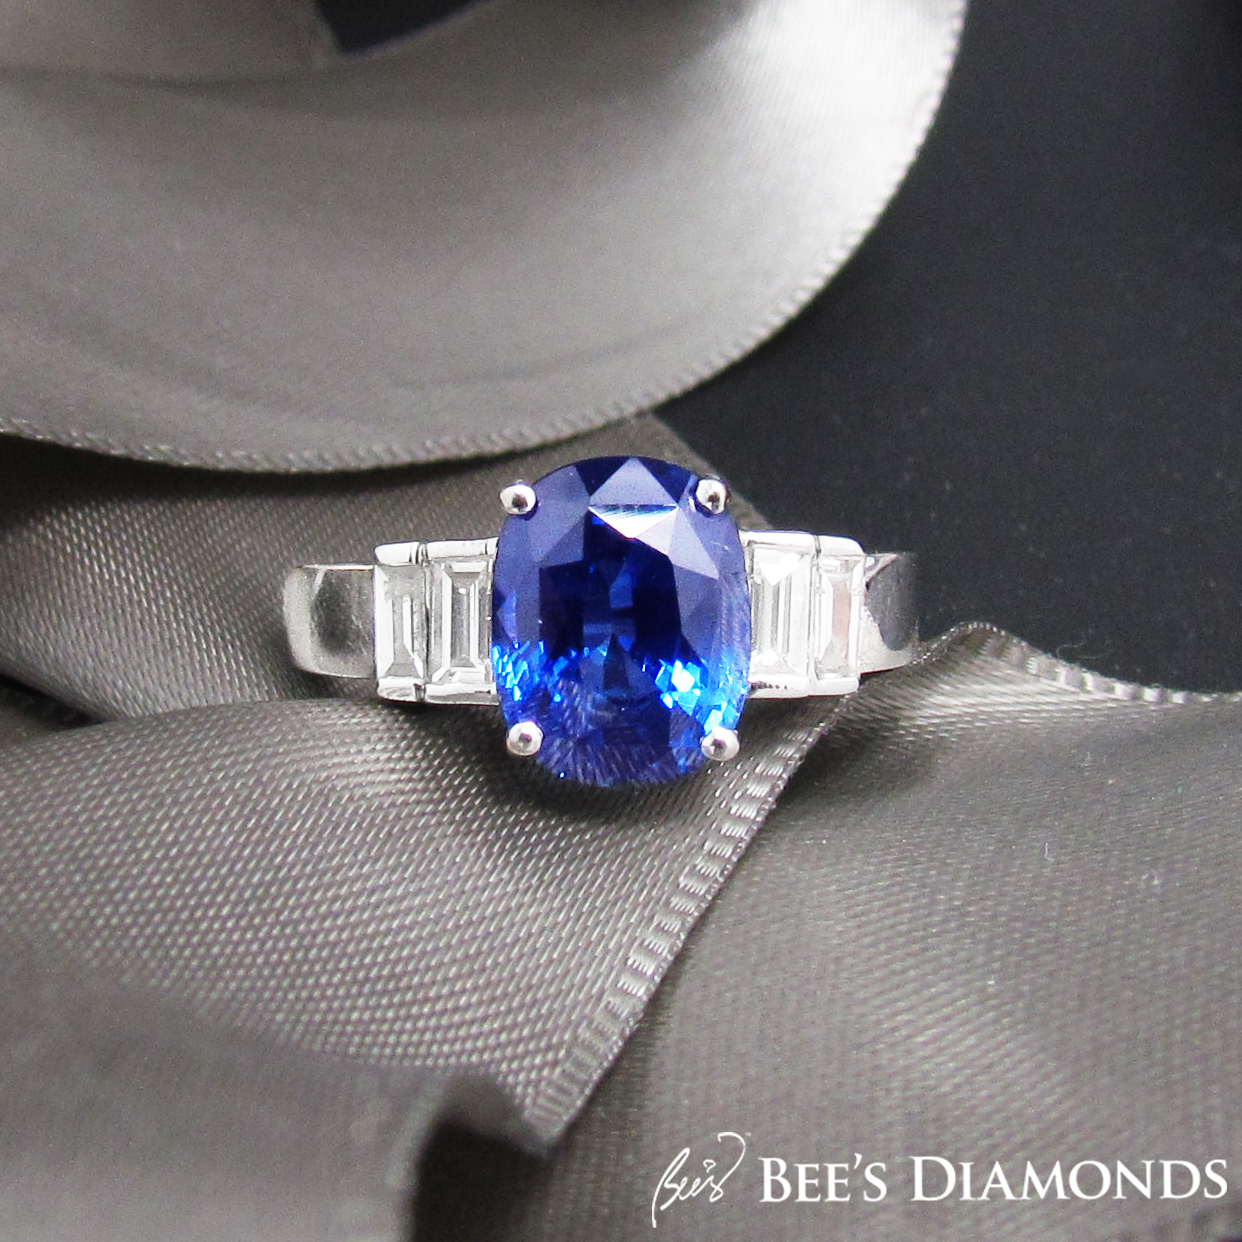 Beautiful blue sapphire engagement ring | Bee's Diamonds